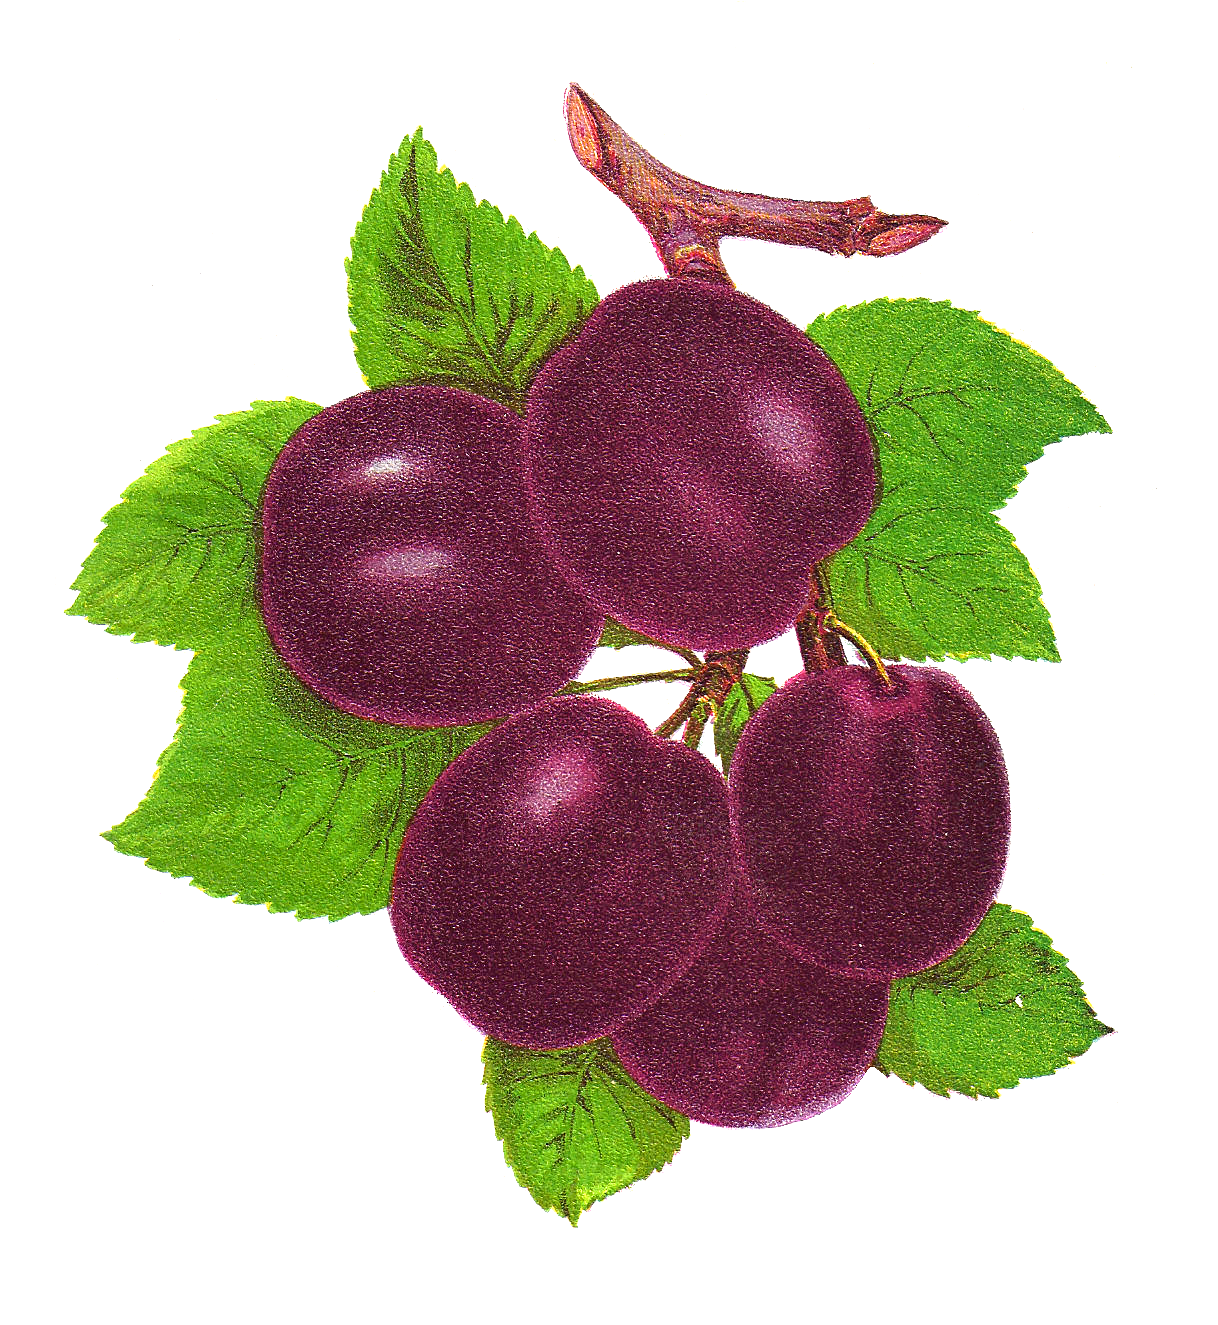 Yahoo image search results. Grape clipart plum fruit